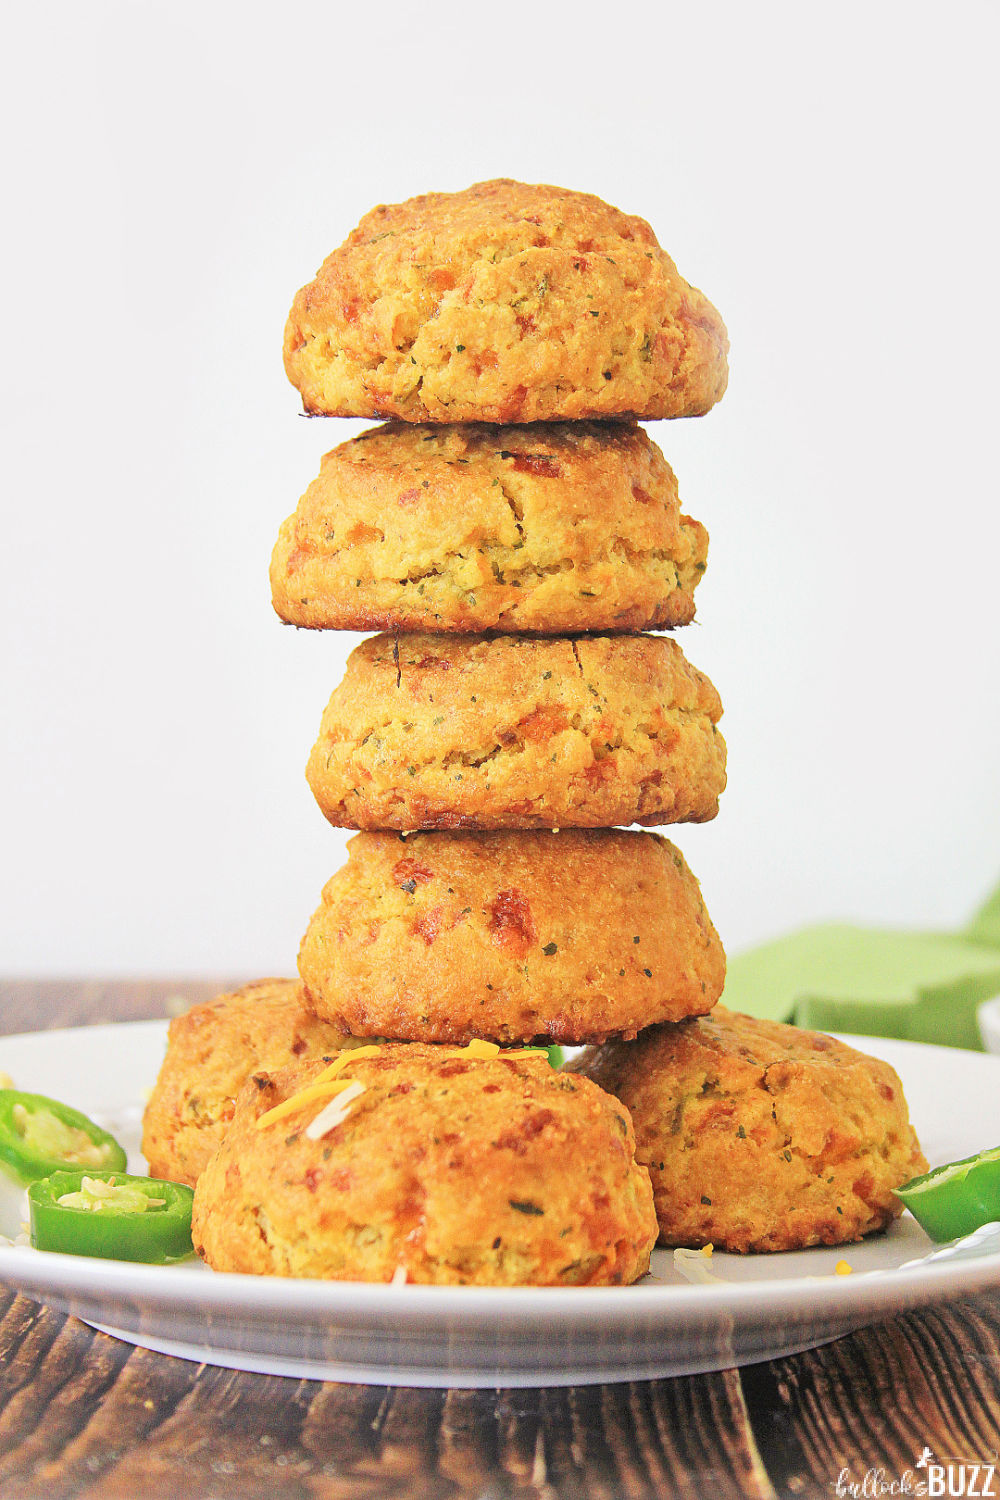 These sweet, crumbly Jalapeño Cheddar Cornbread Muffins are unbelievably easy to make and incredibly delicious.